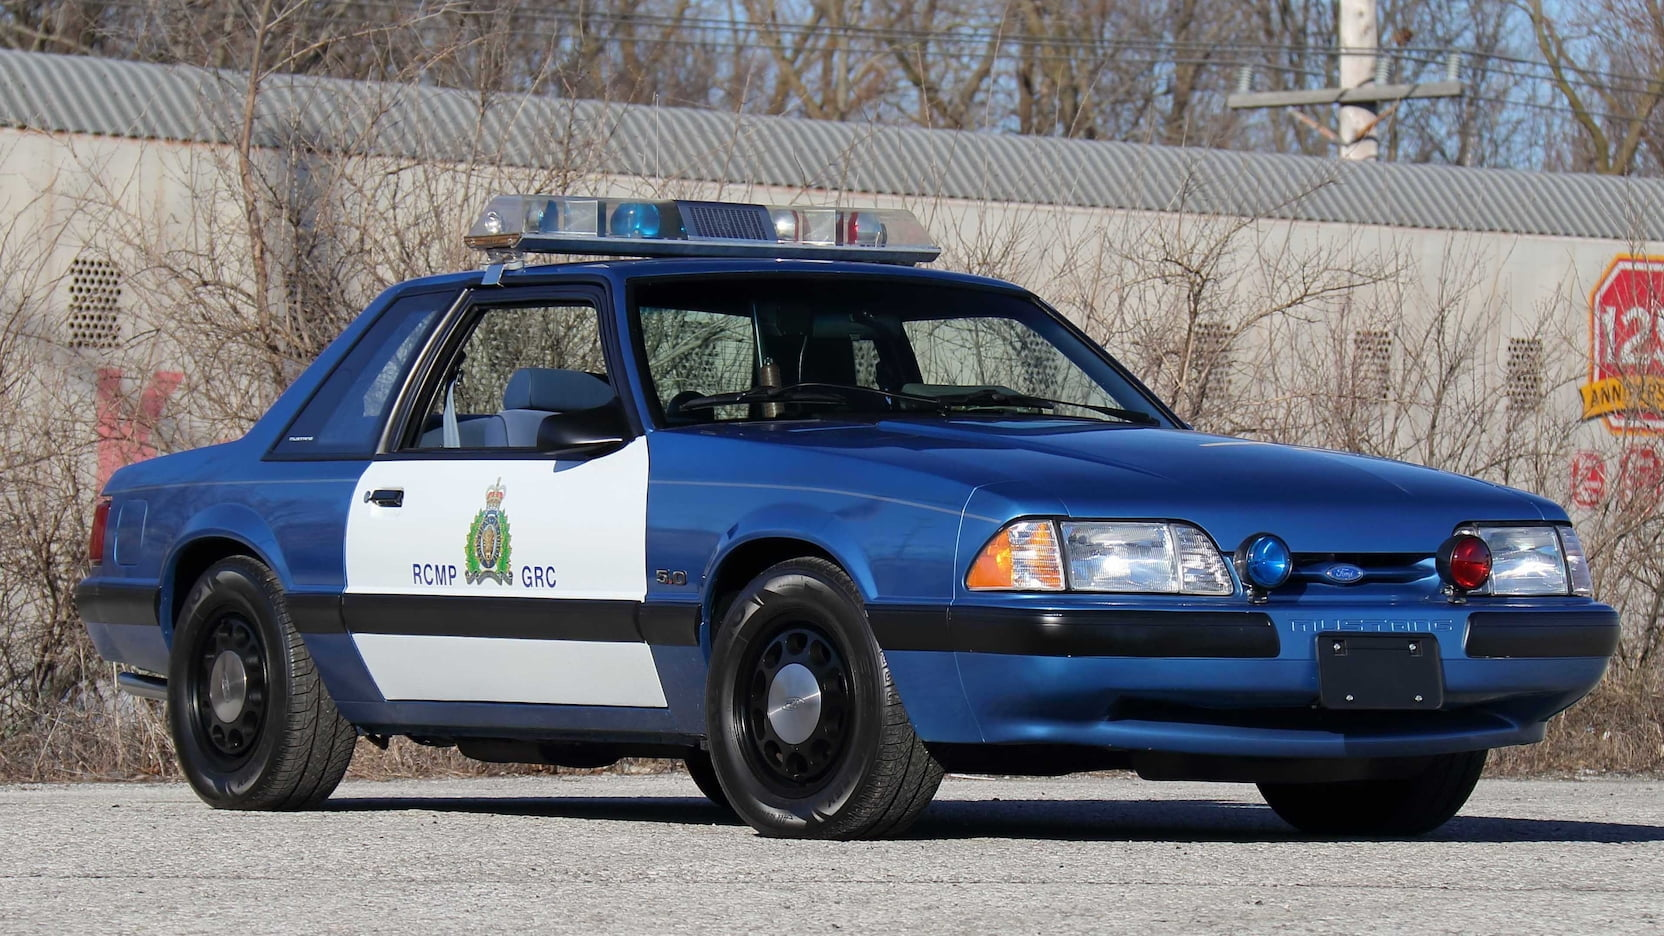 1989 Ford Mustang ssp police car front three-quarter